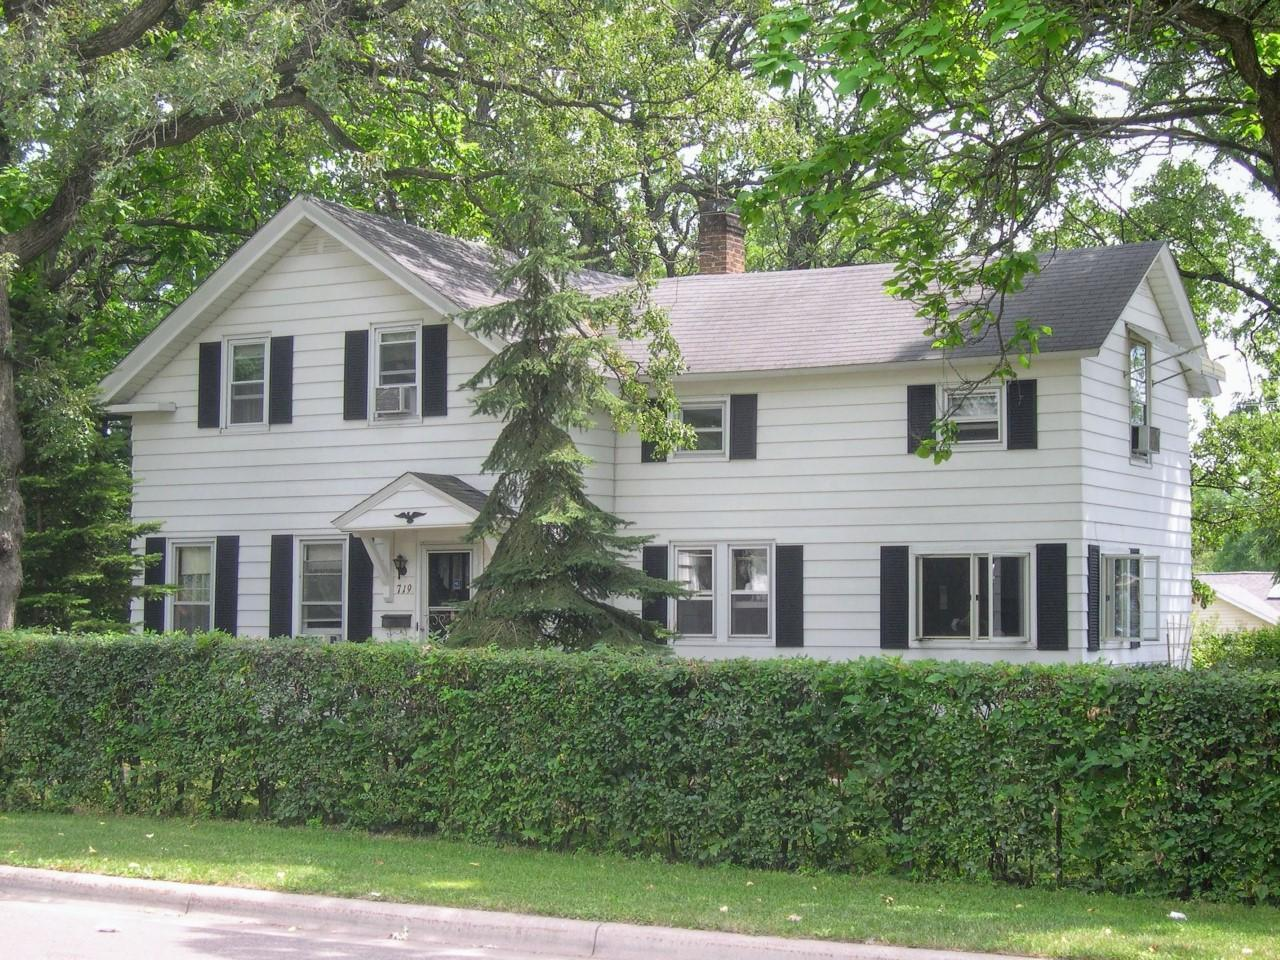 719 4th Street W Property Photo - Hastings, MN real estate listing